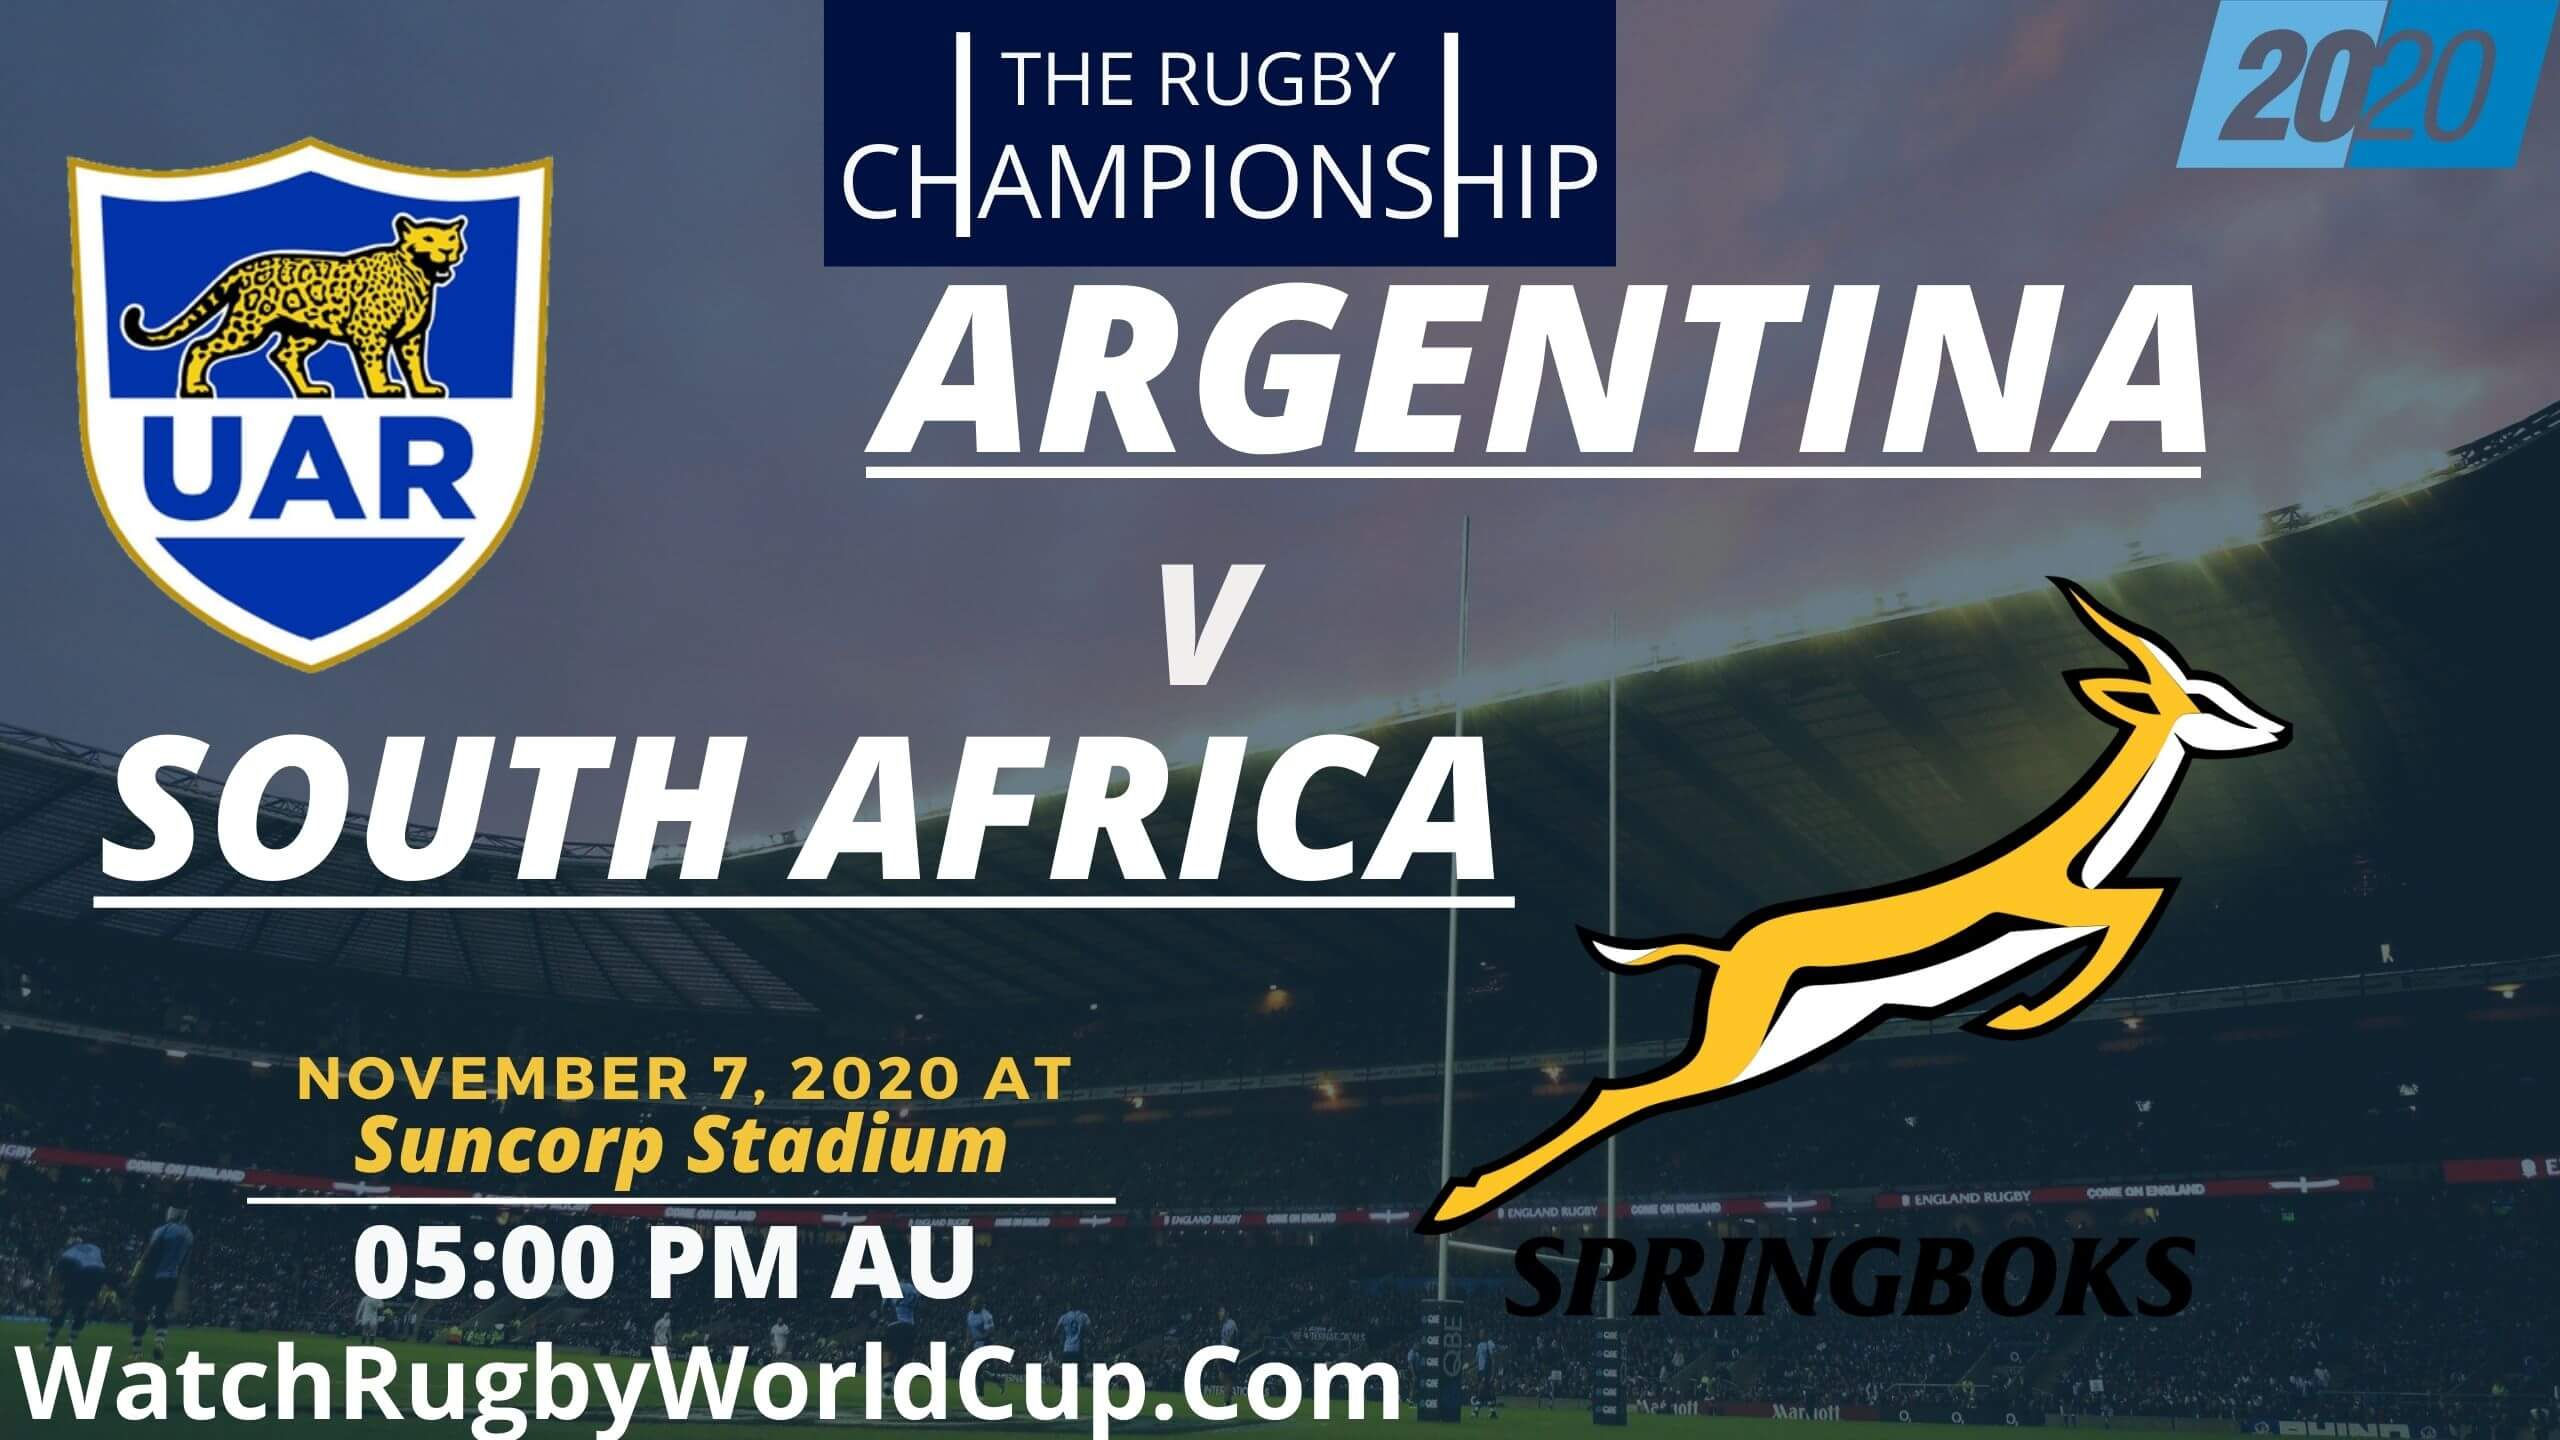 Argentina VS South Africa Rugby Championship Live Stream